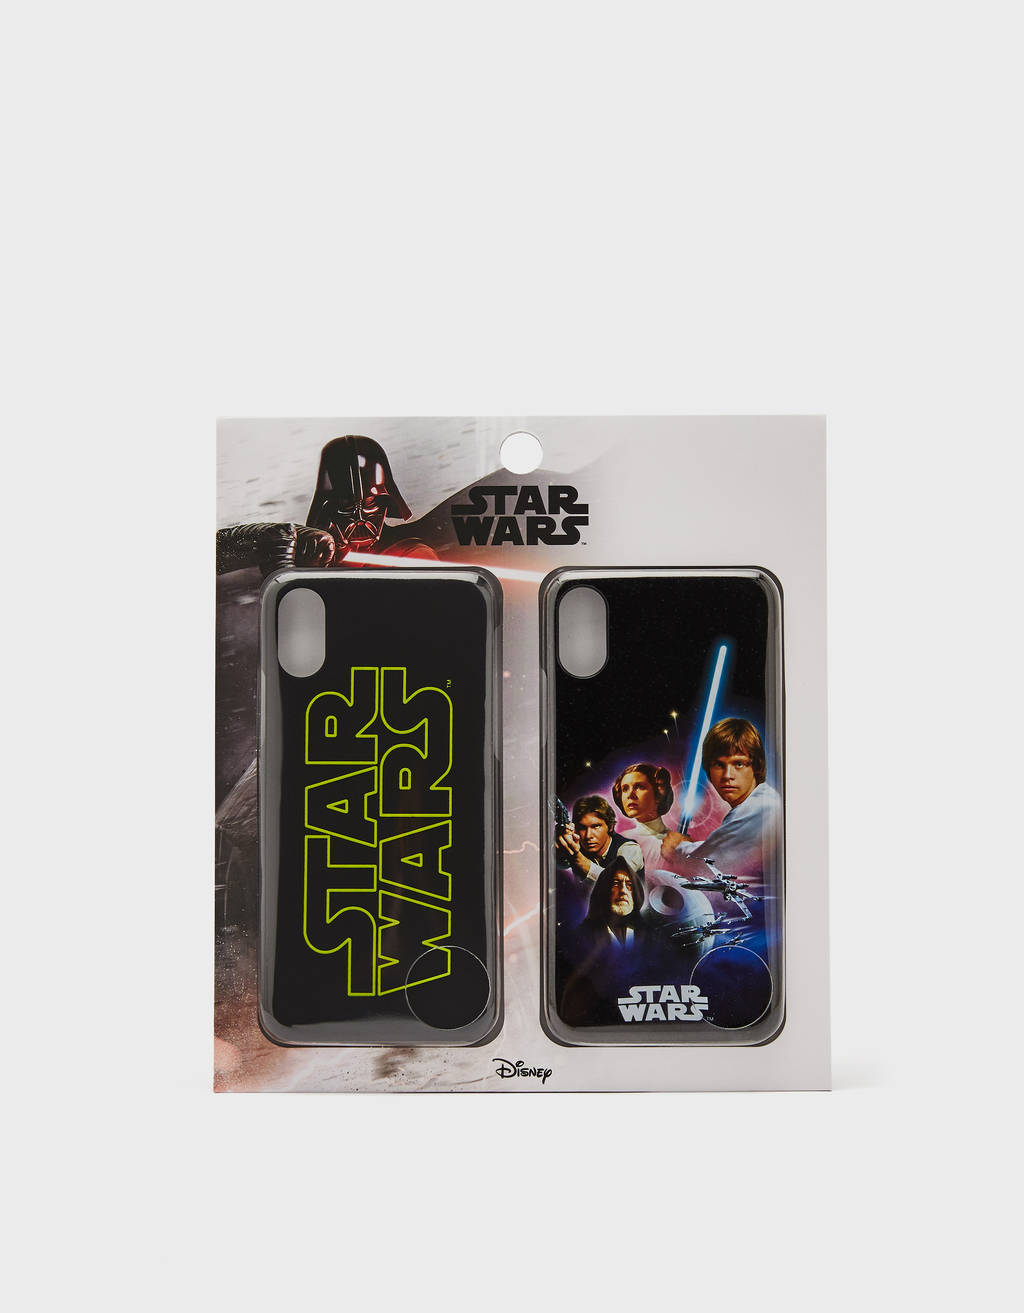 Set maski Star Wars za iPhone X/XS